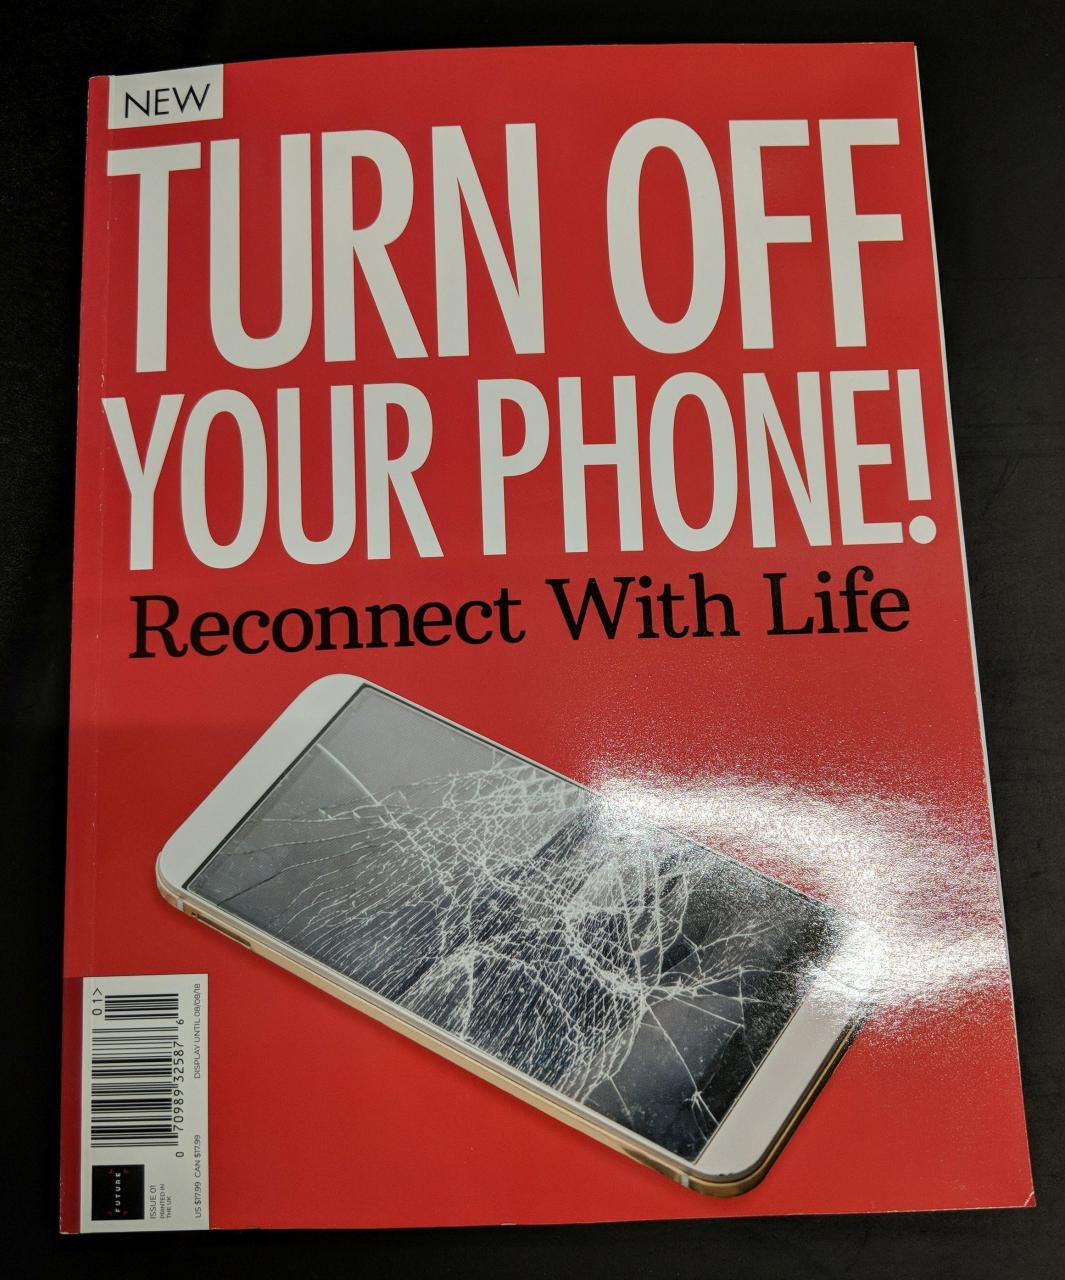 Now they're writing ENTIRE MAGAZINES to tell us about how evil phones are